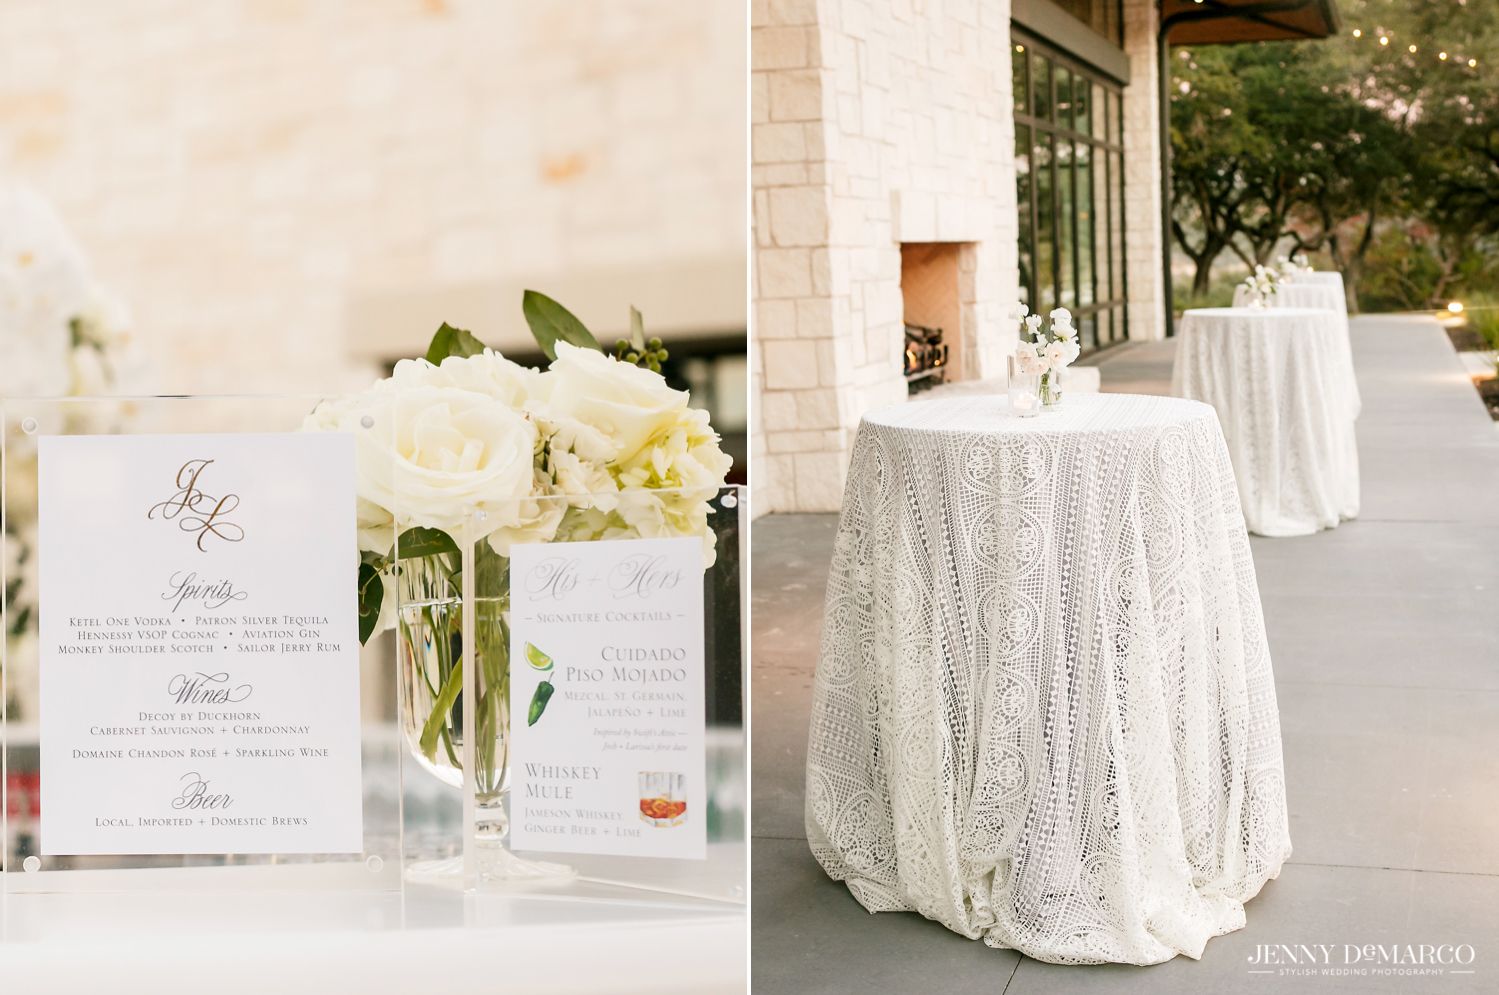 bar menu and beautiful white lace tablecloths for the reception